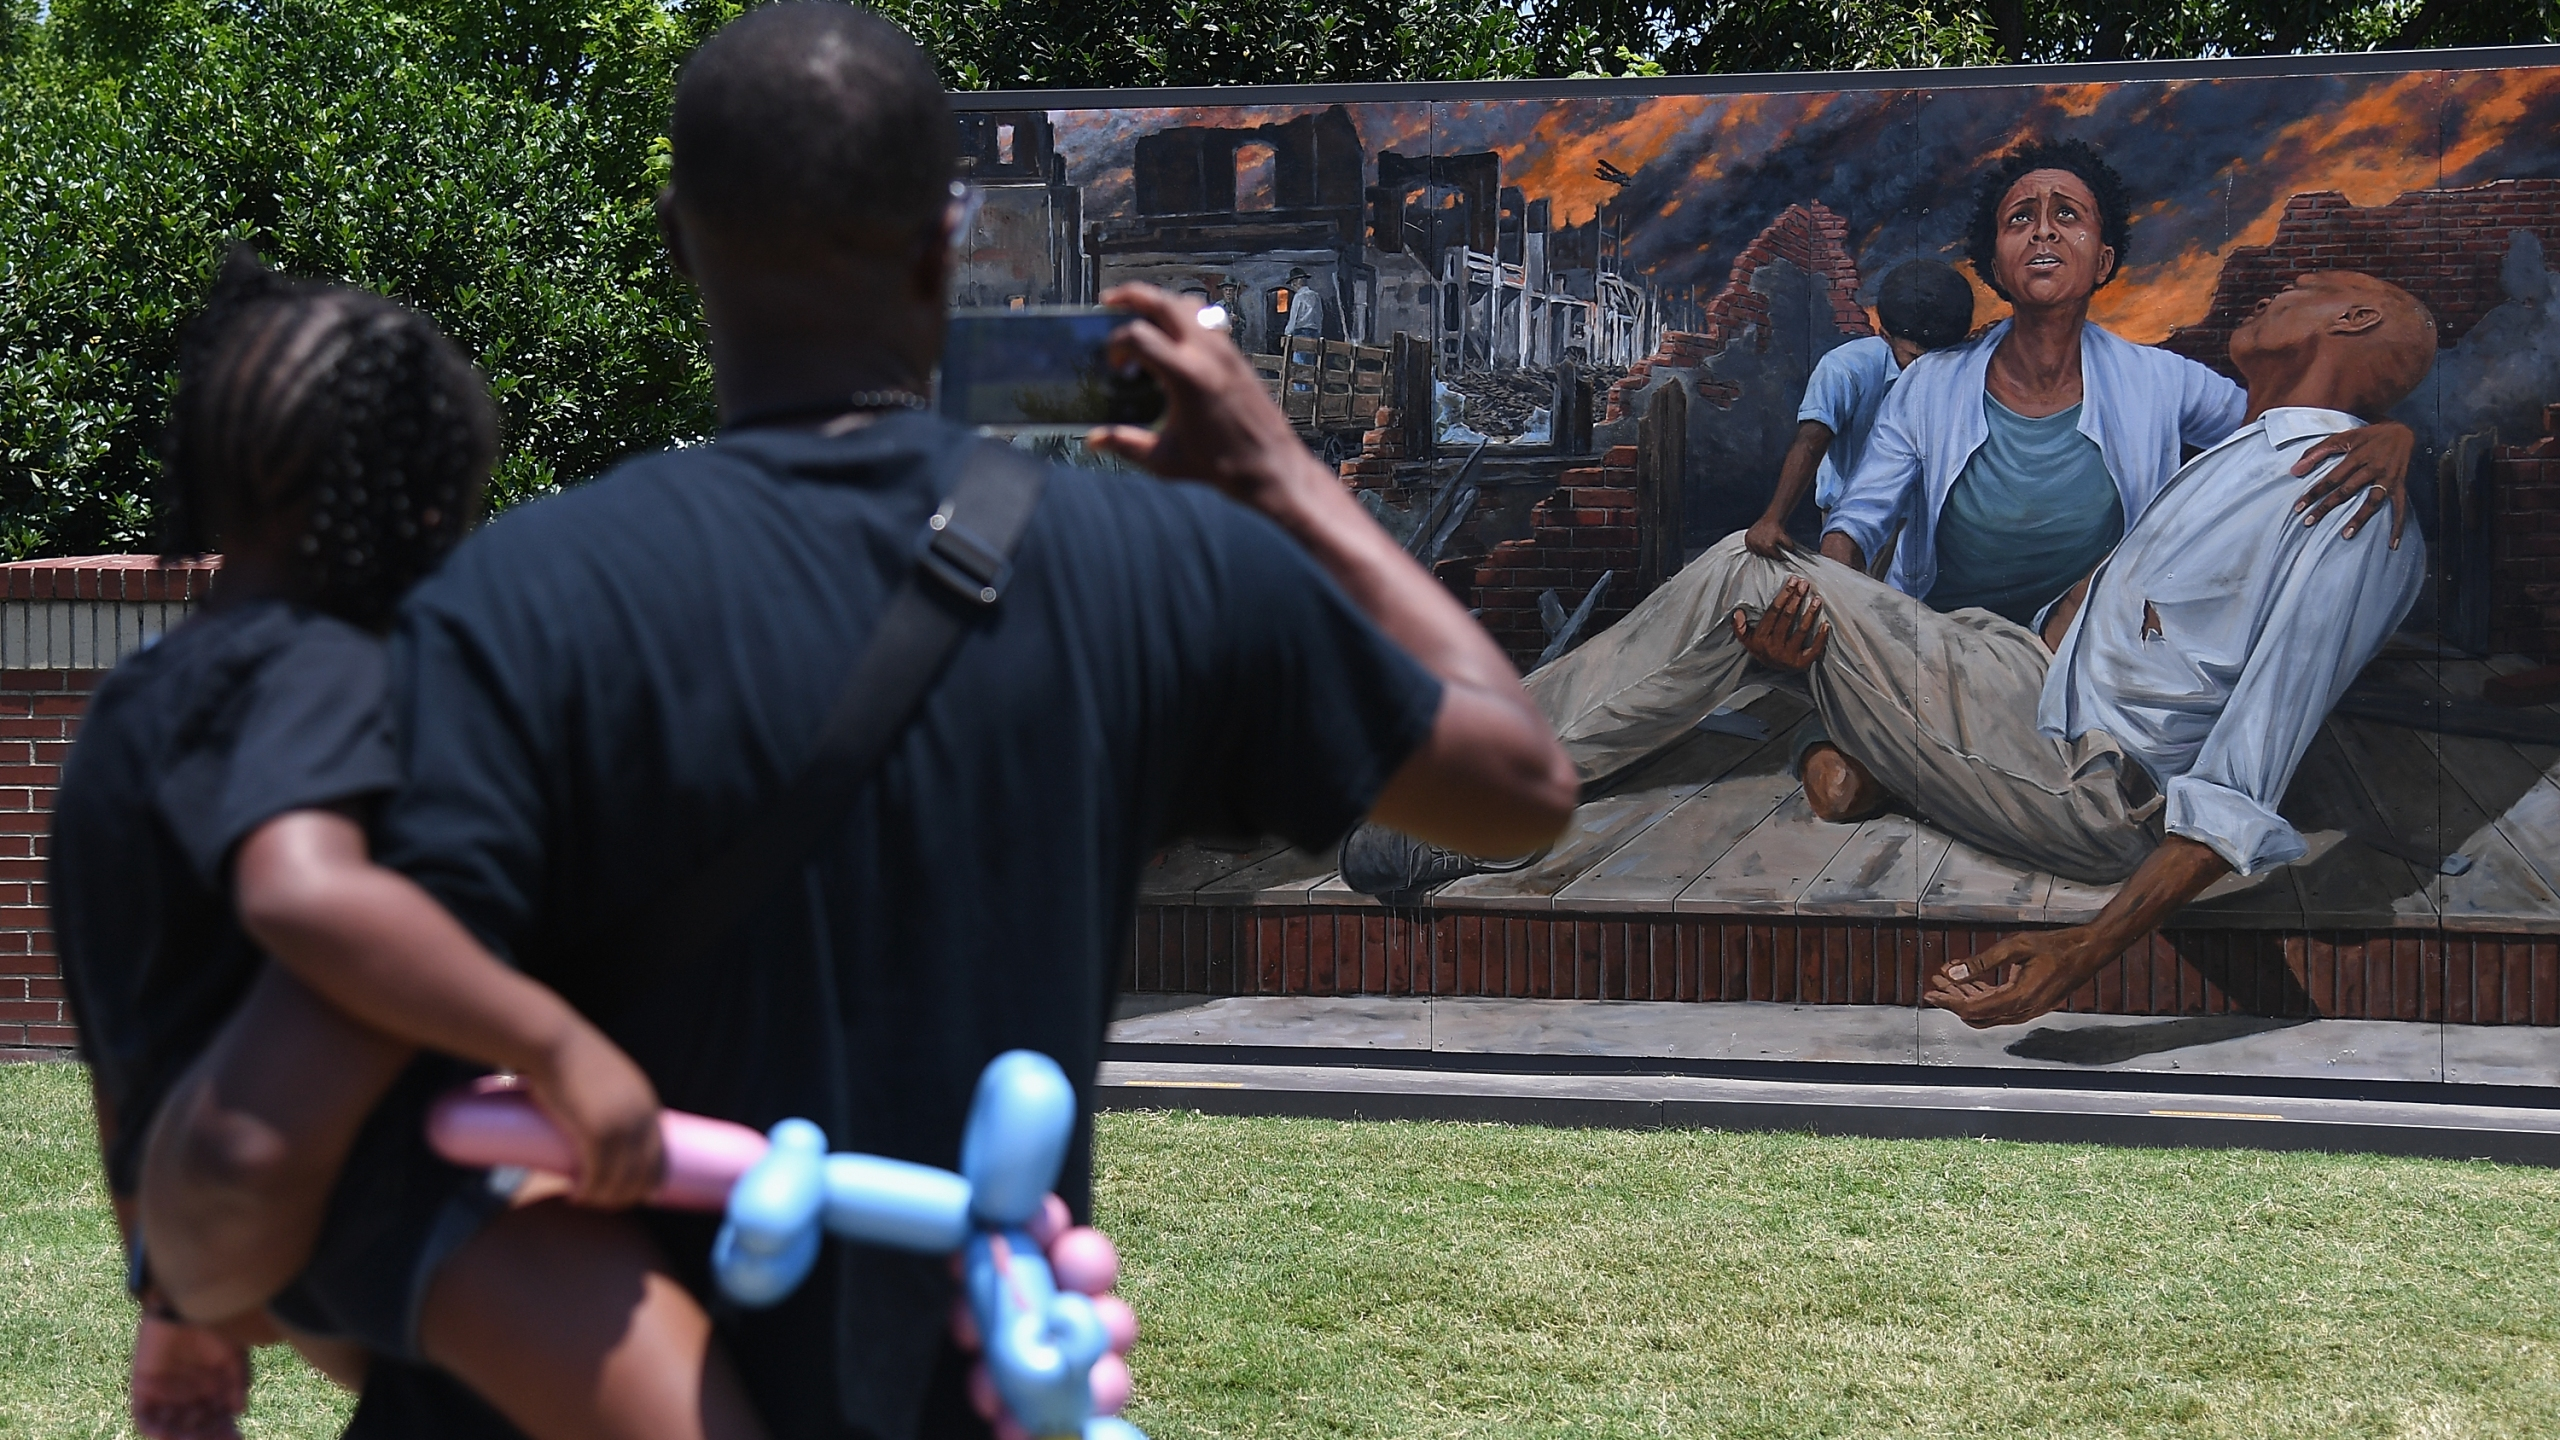 Attendees take in an art installation on Greenwood Avenue during the Juneteenth Festival on June 19, 2021 in Tulsa, Oklahoma. (Michael B. Thomas/Getty Images)